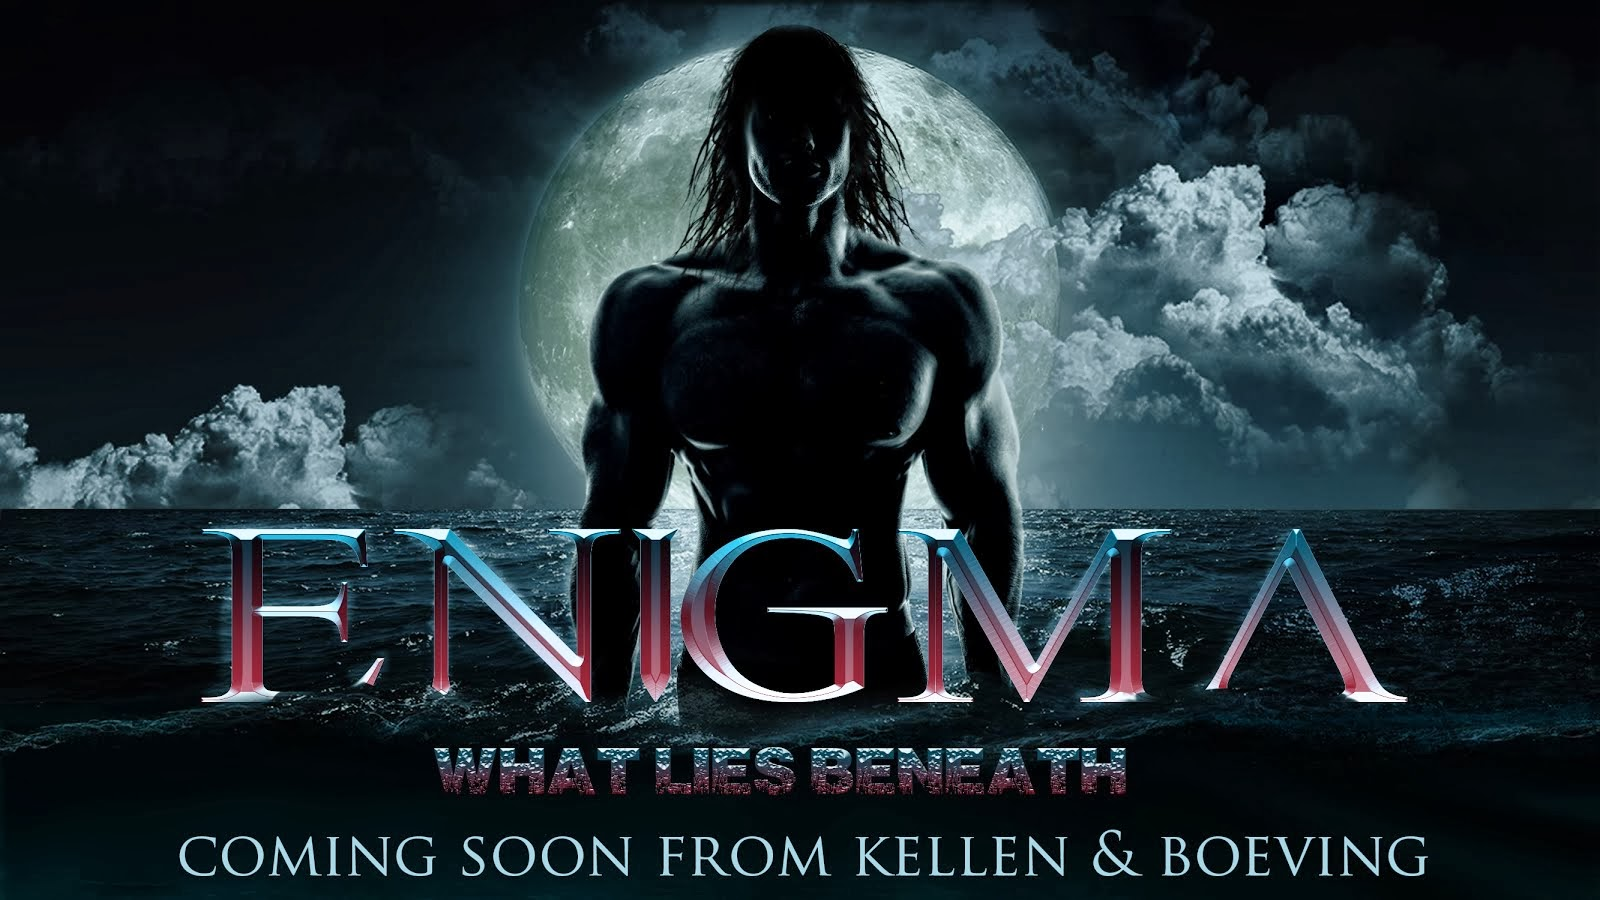 Enigma! Coming soon!